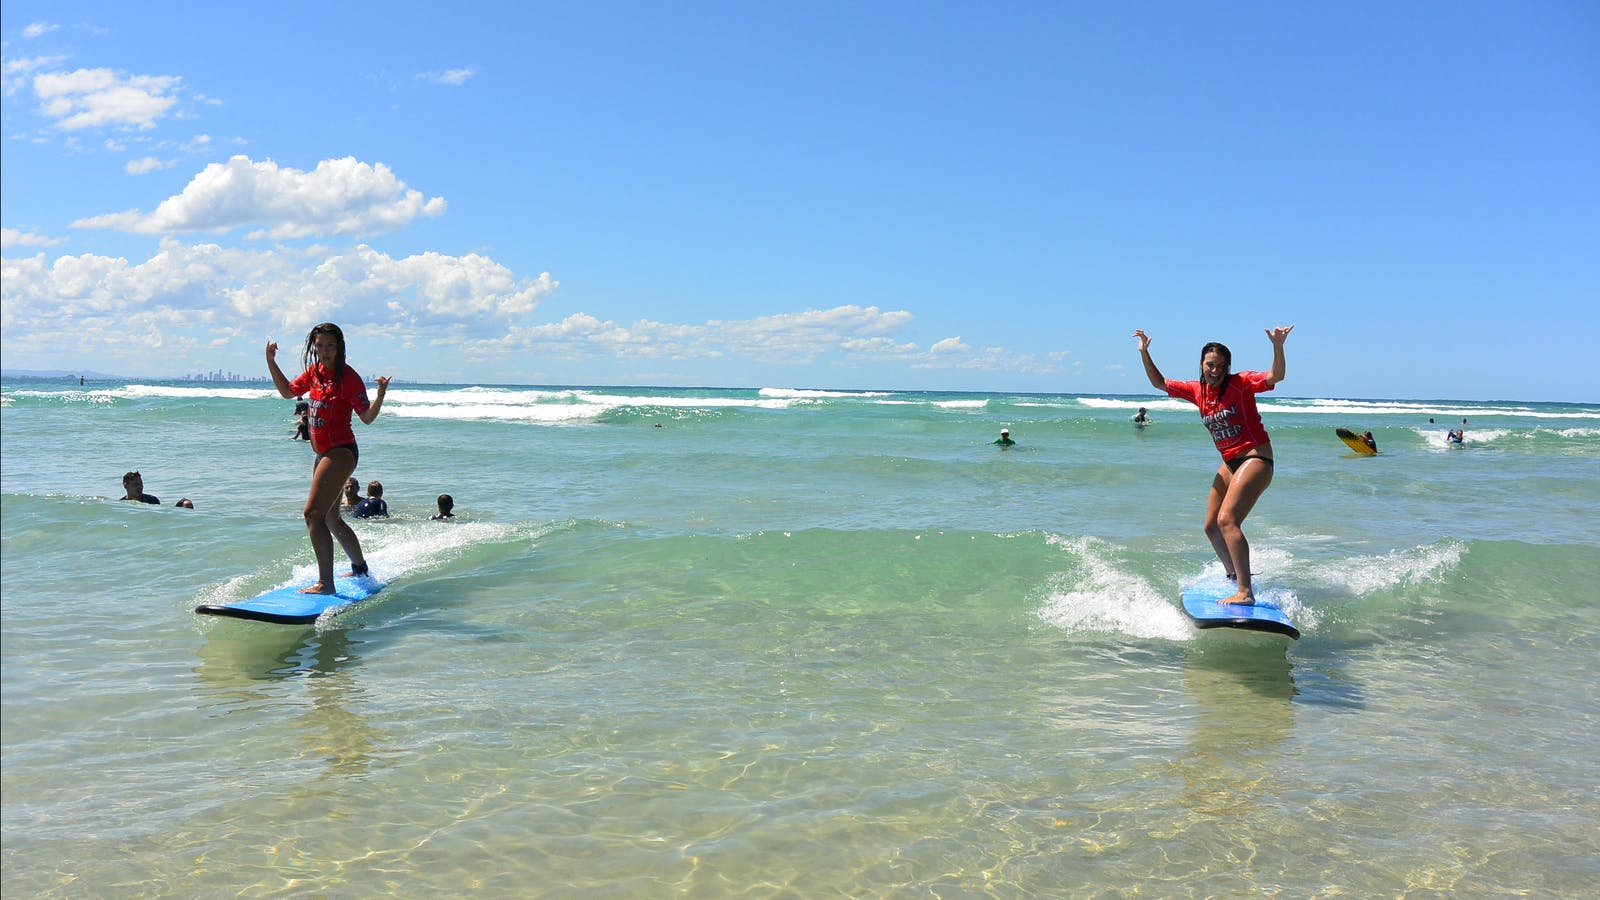 Gold Coast Learn to Surf in crystal clear water with us at Greenmount Beach